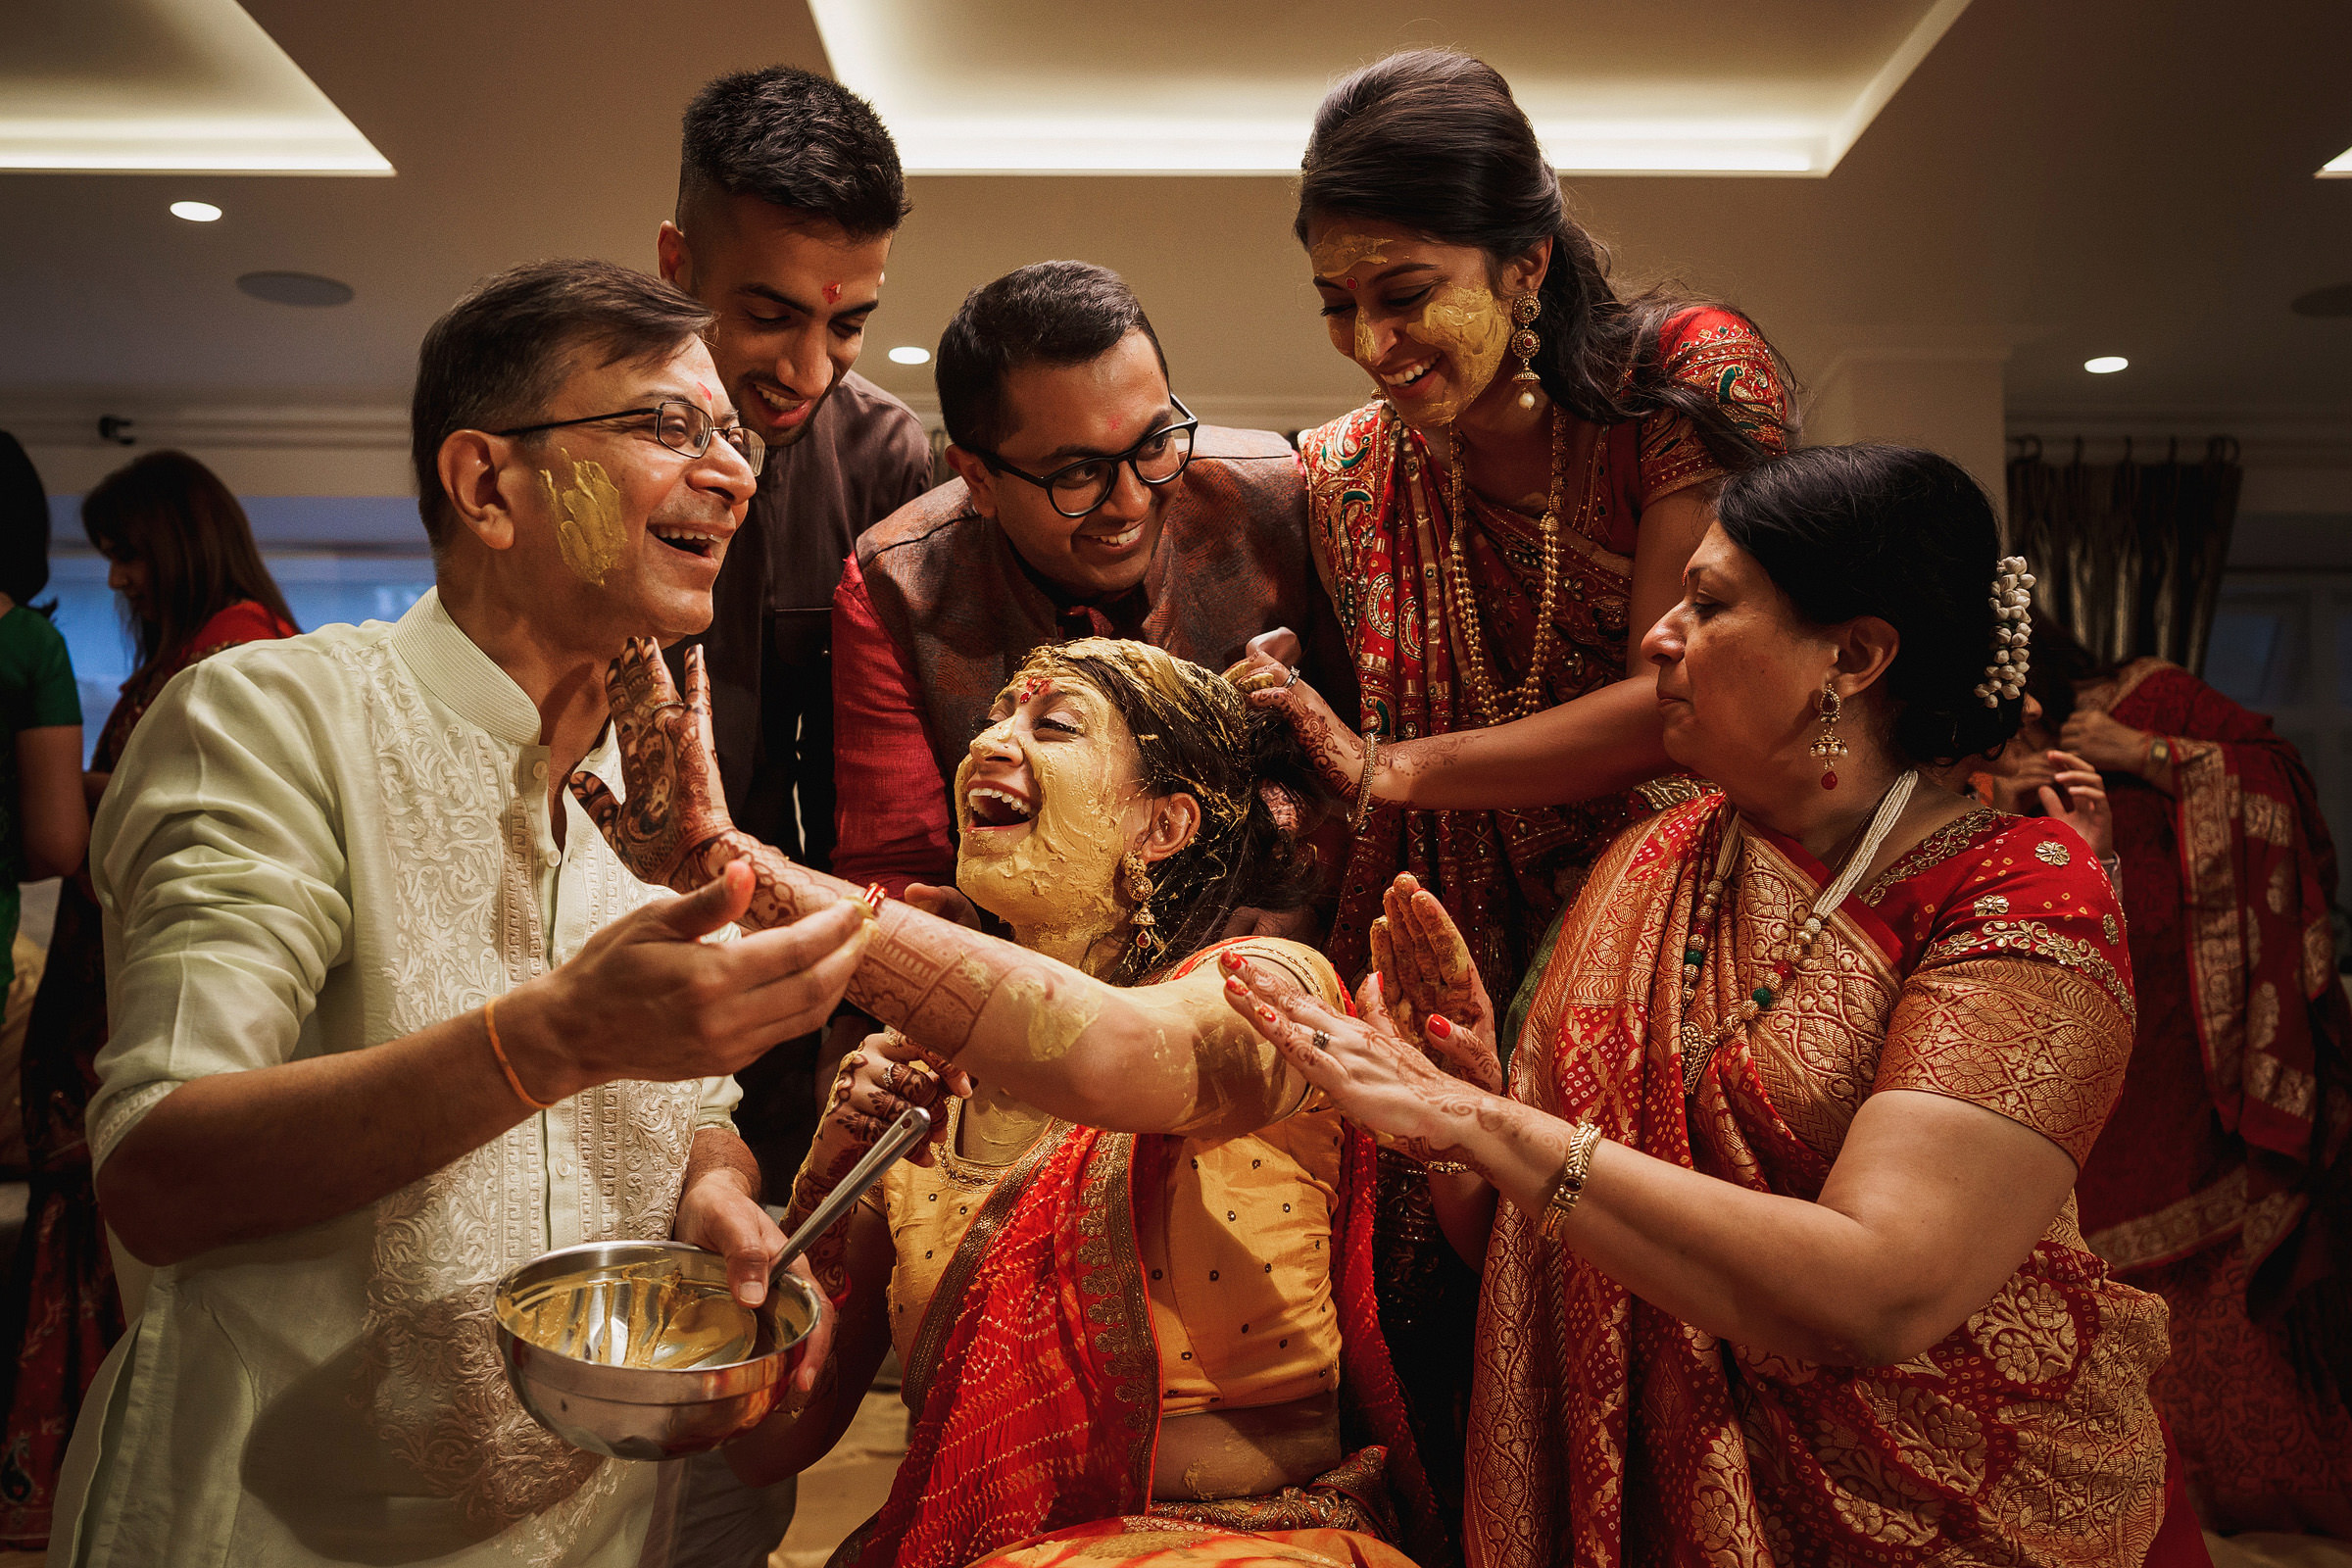 Joyful photo of Indian family during saffron wedding ceremony by f5 best London wedding photographr